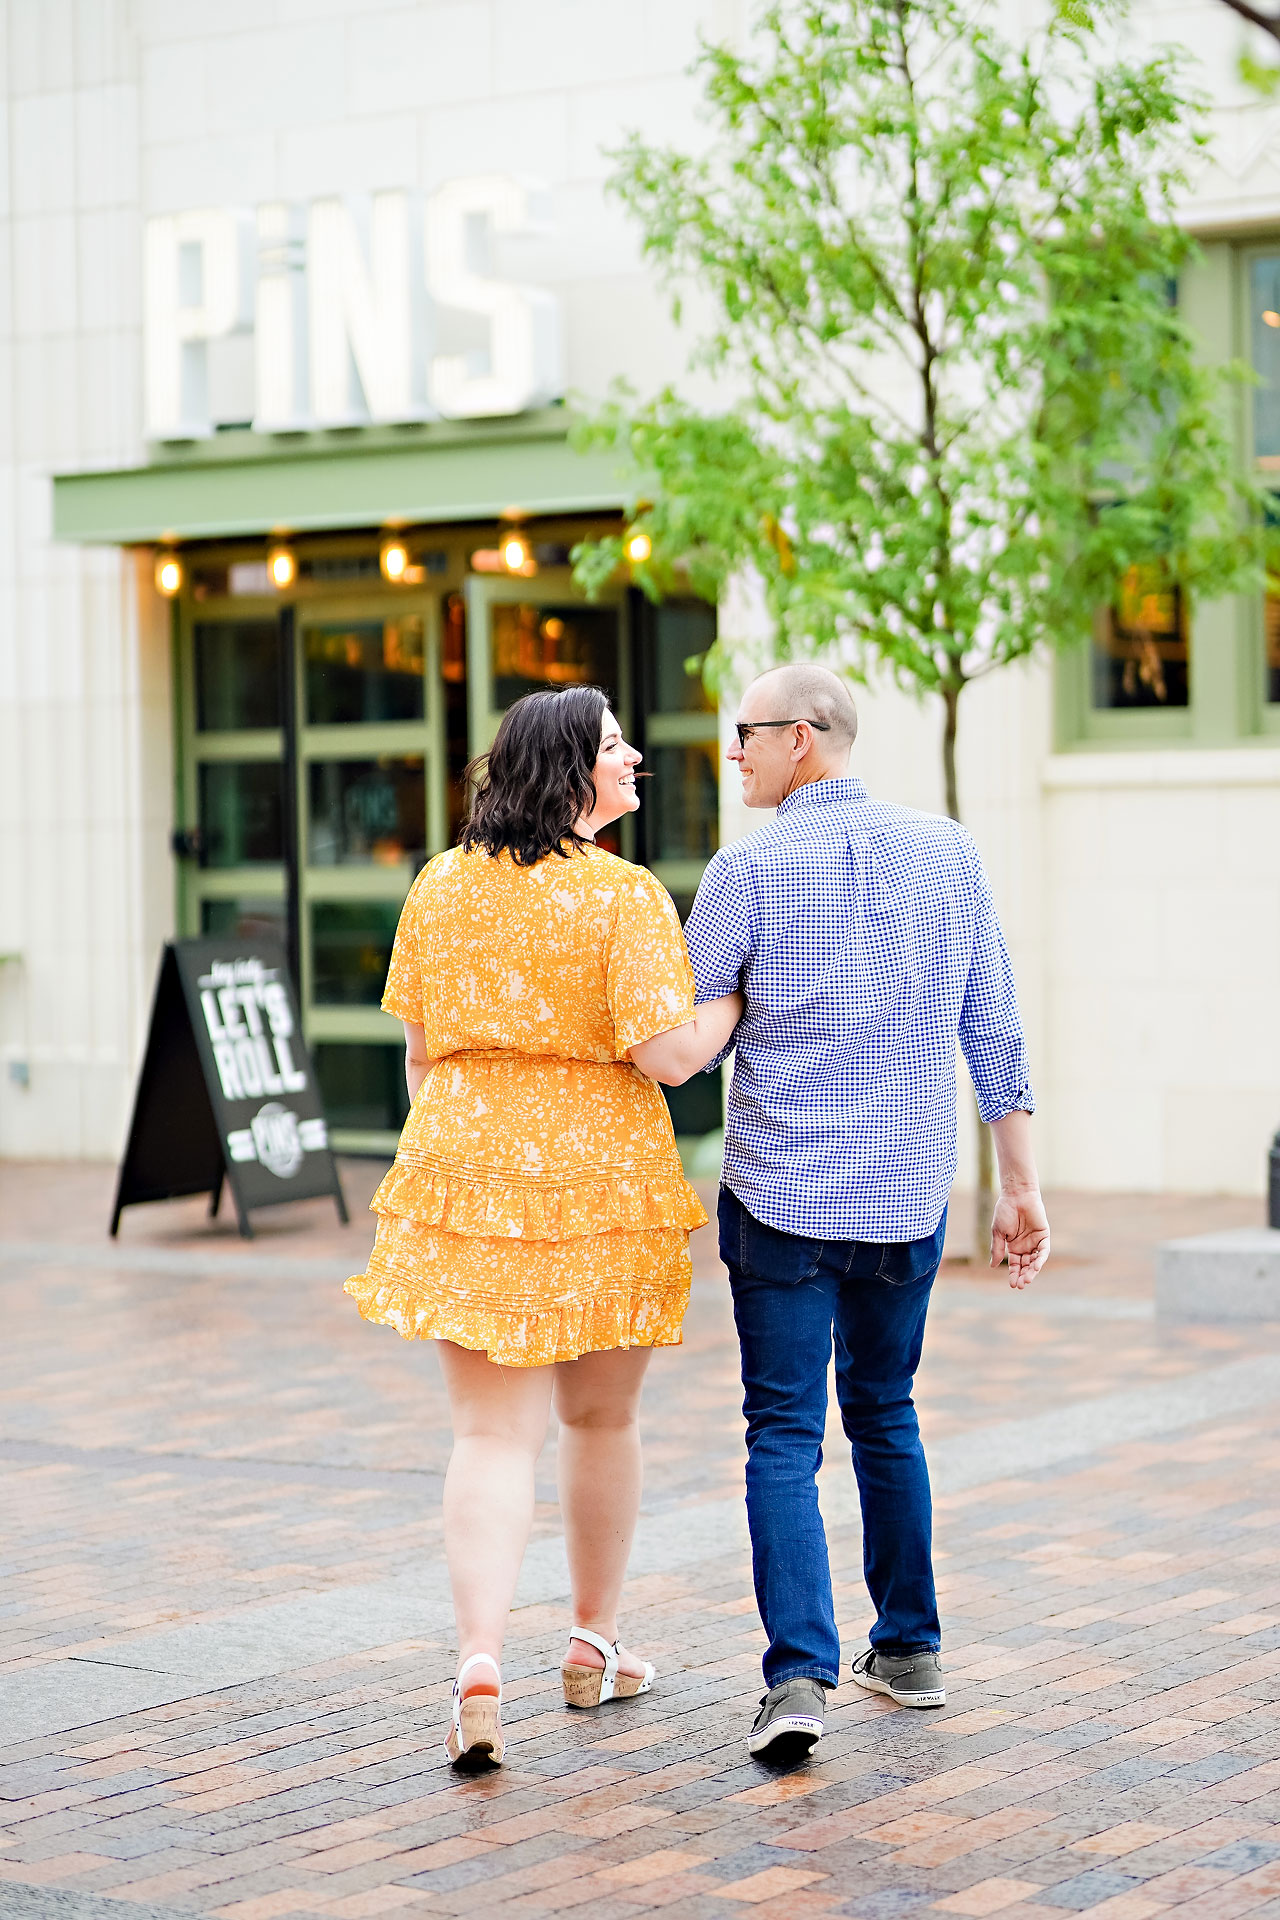 Katie Chuck Bottleworks Canal Indianapolis Engagement Session 022